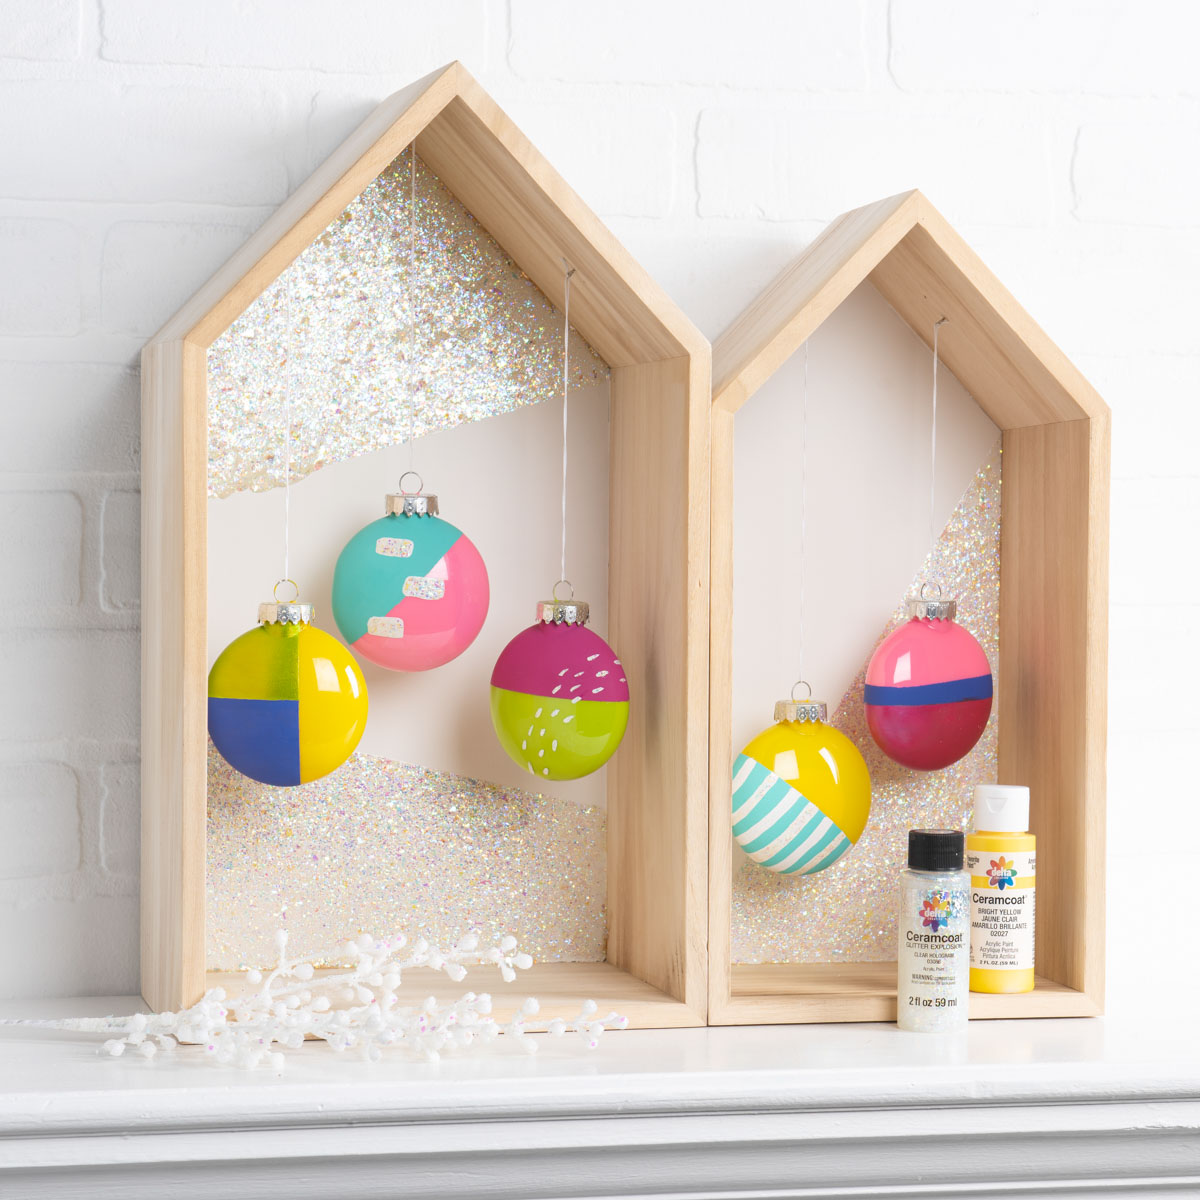 Delta Ornaments and Glitter Explosion Houses